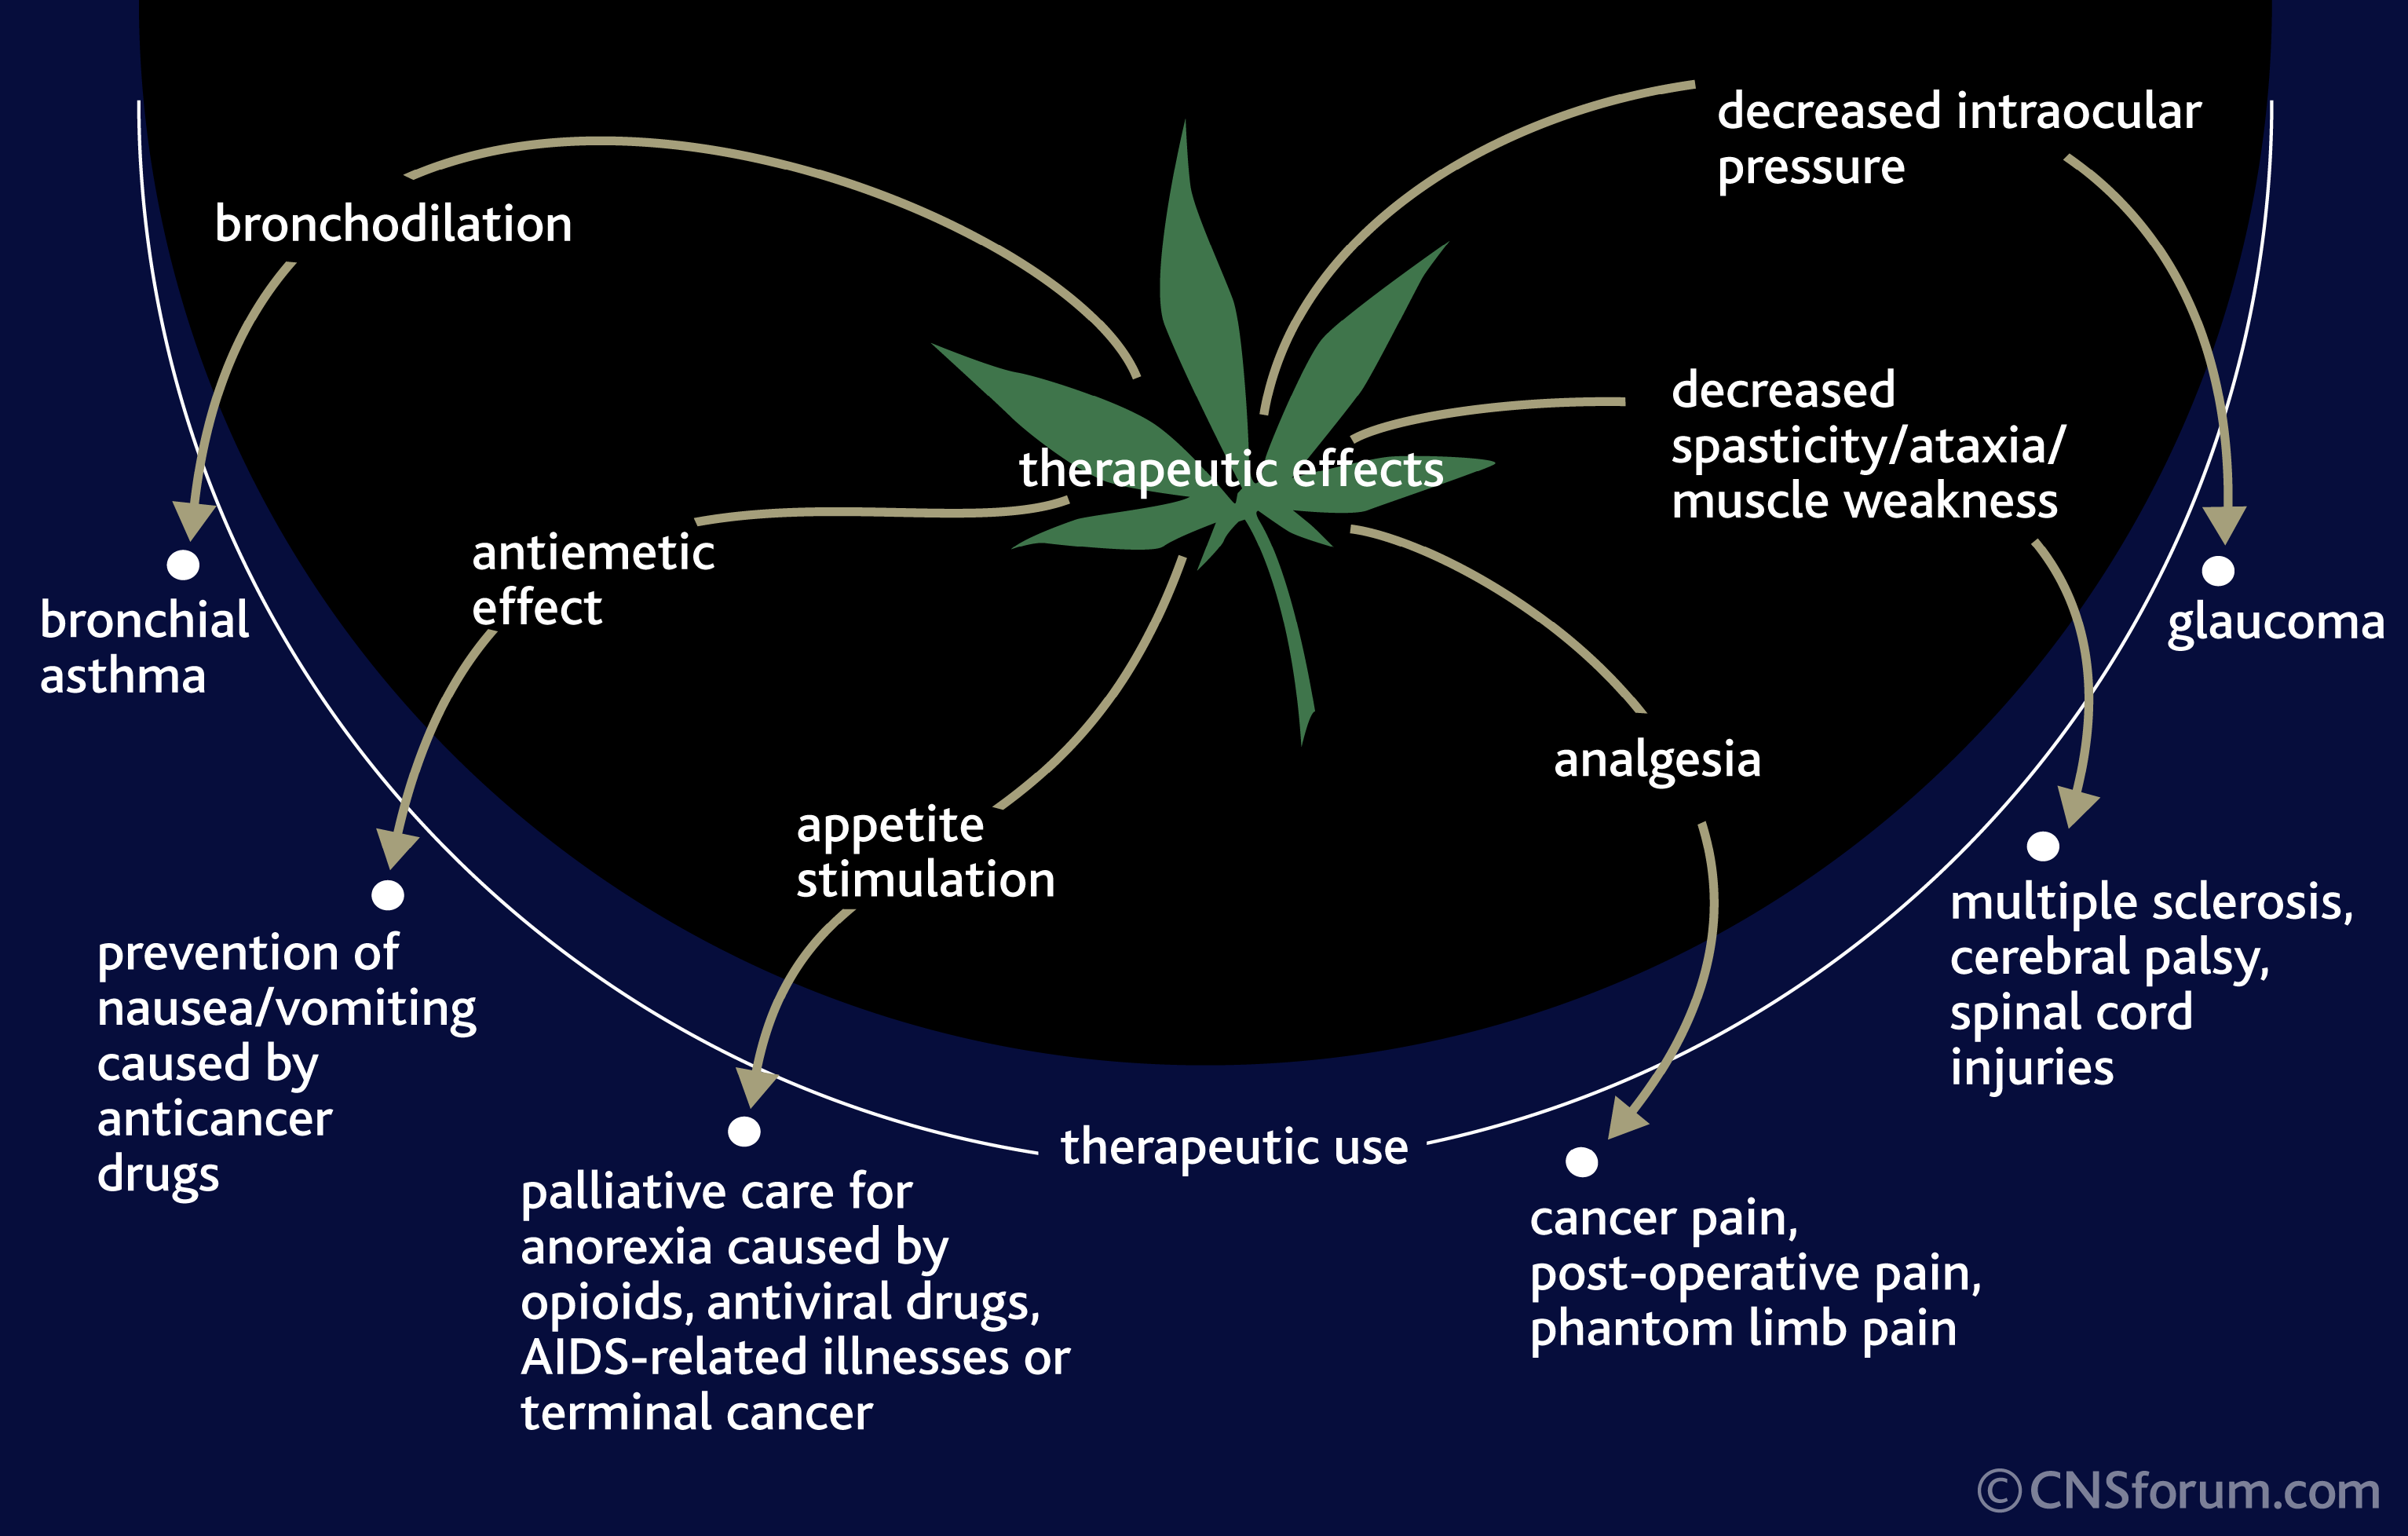 CANNABINOIDS FOR THERAPEUTIC PURPOSES